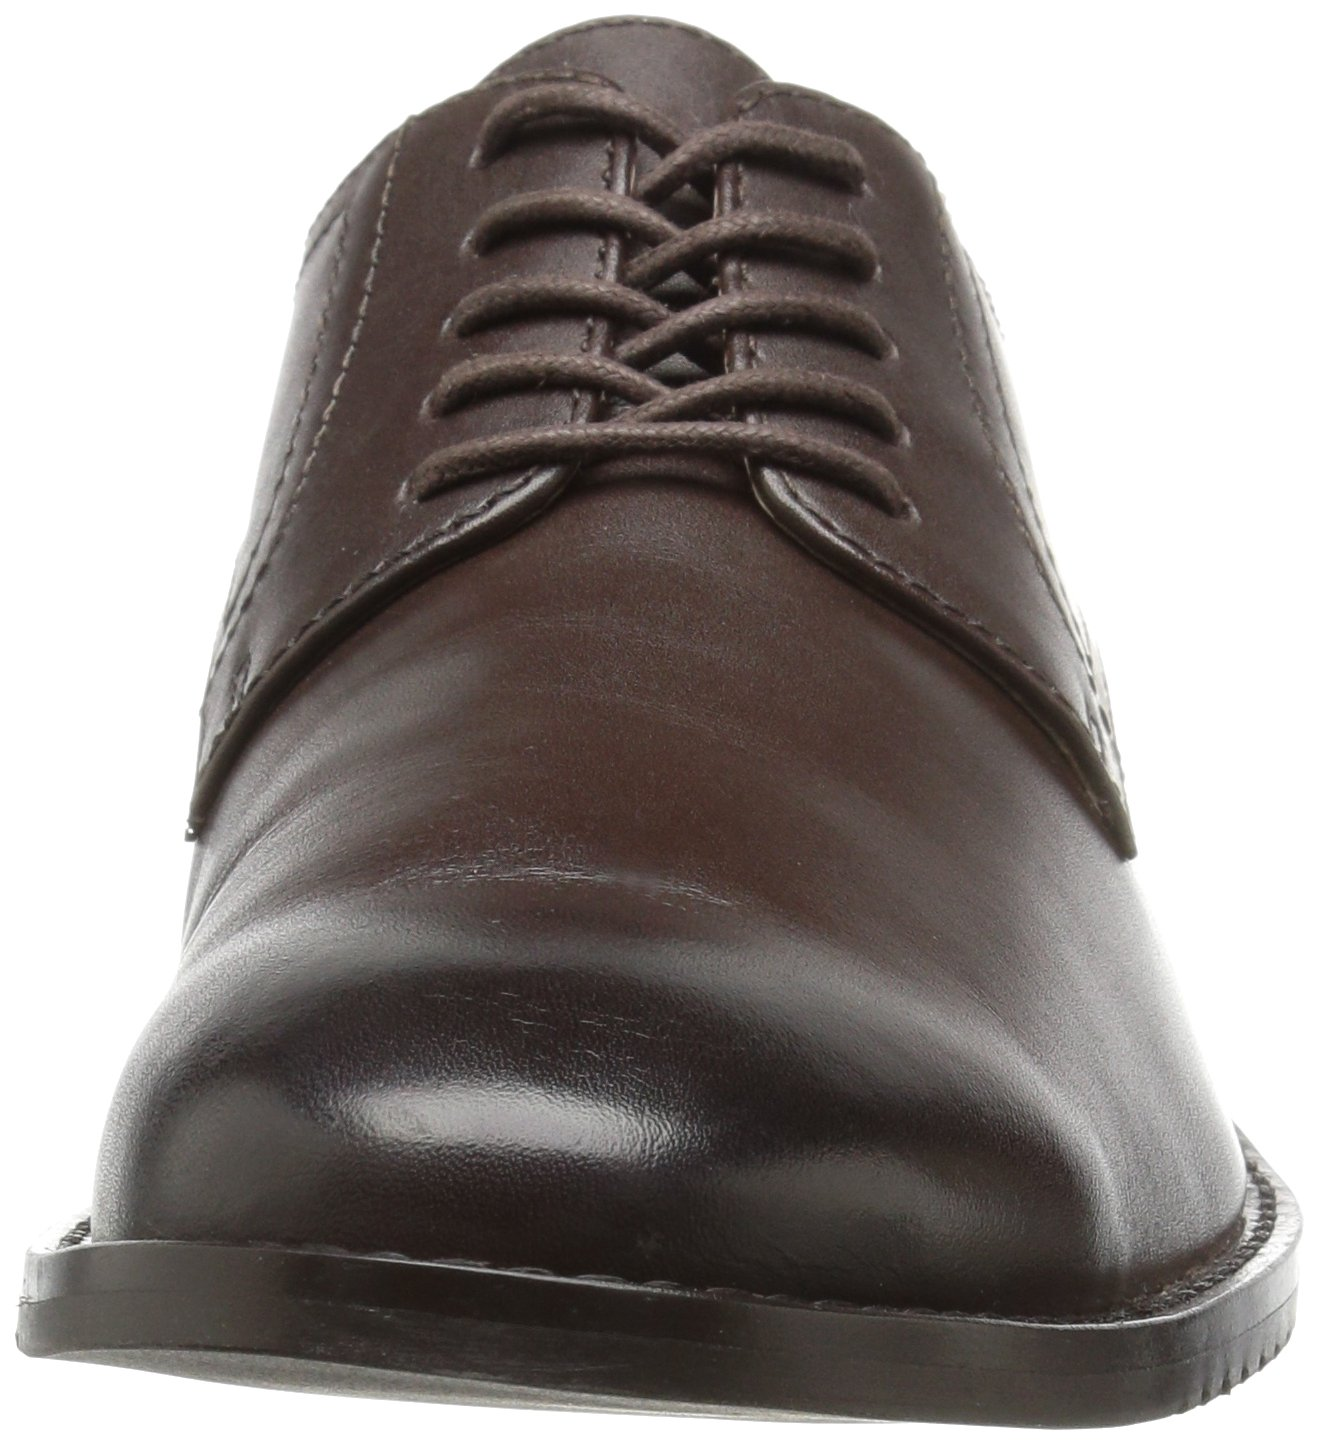 206 Collective Men's Concord Plain-Toe Oxford Shoe, Chocolate Brown, 11 D US by 206 Collective (Image #4)